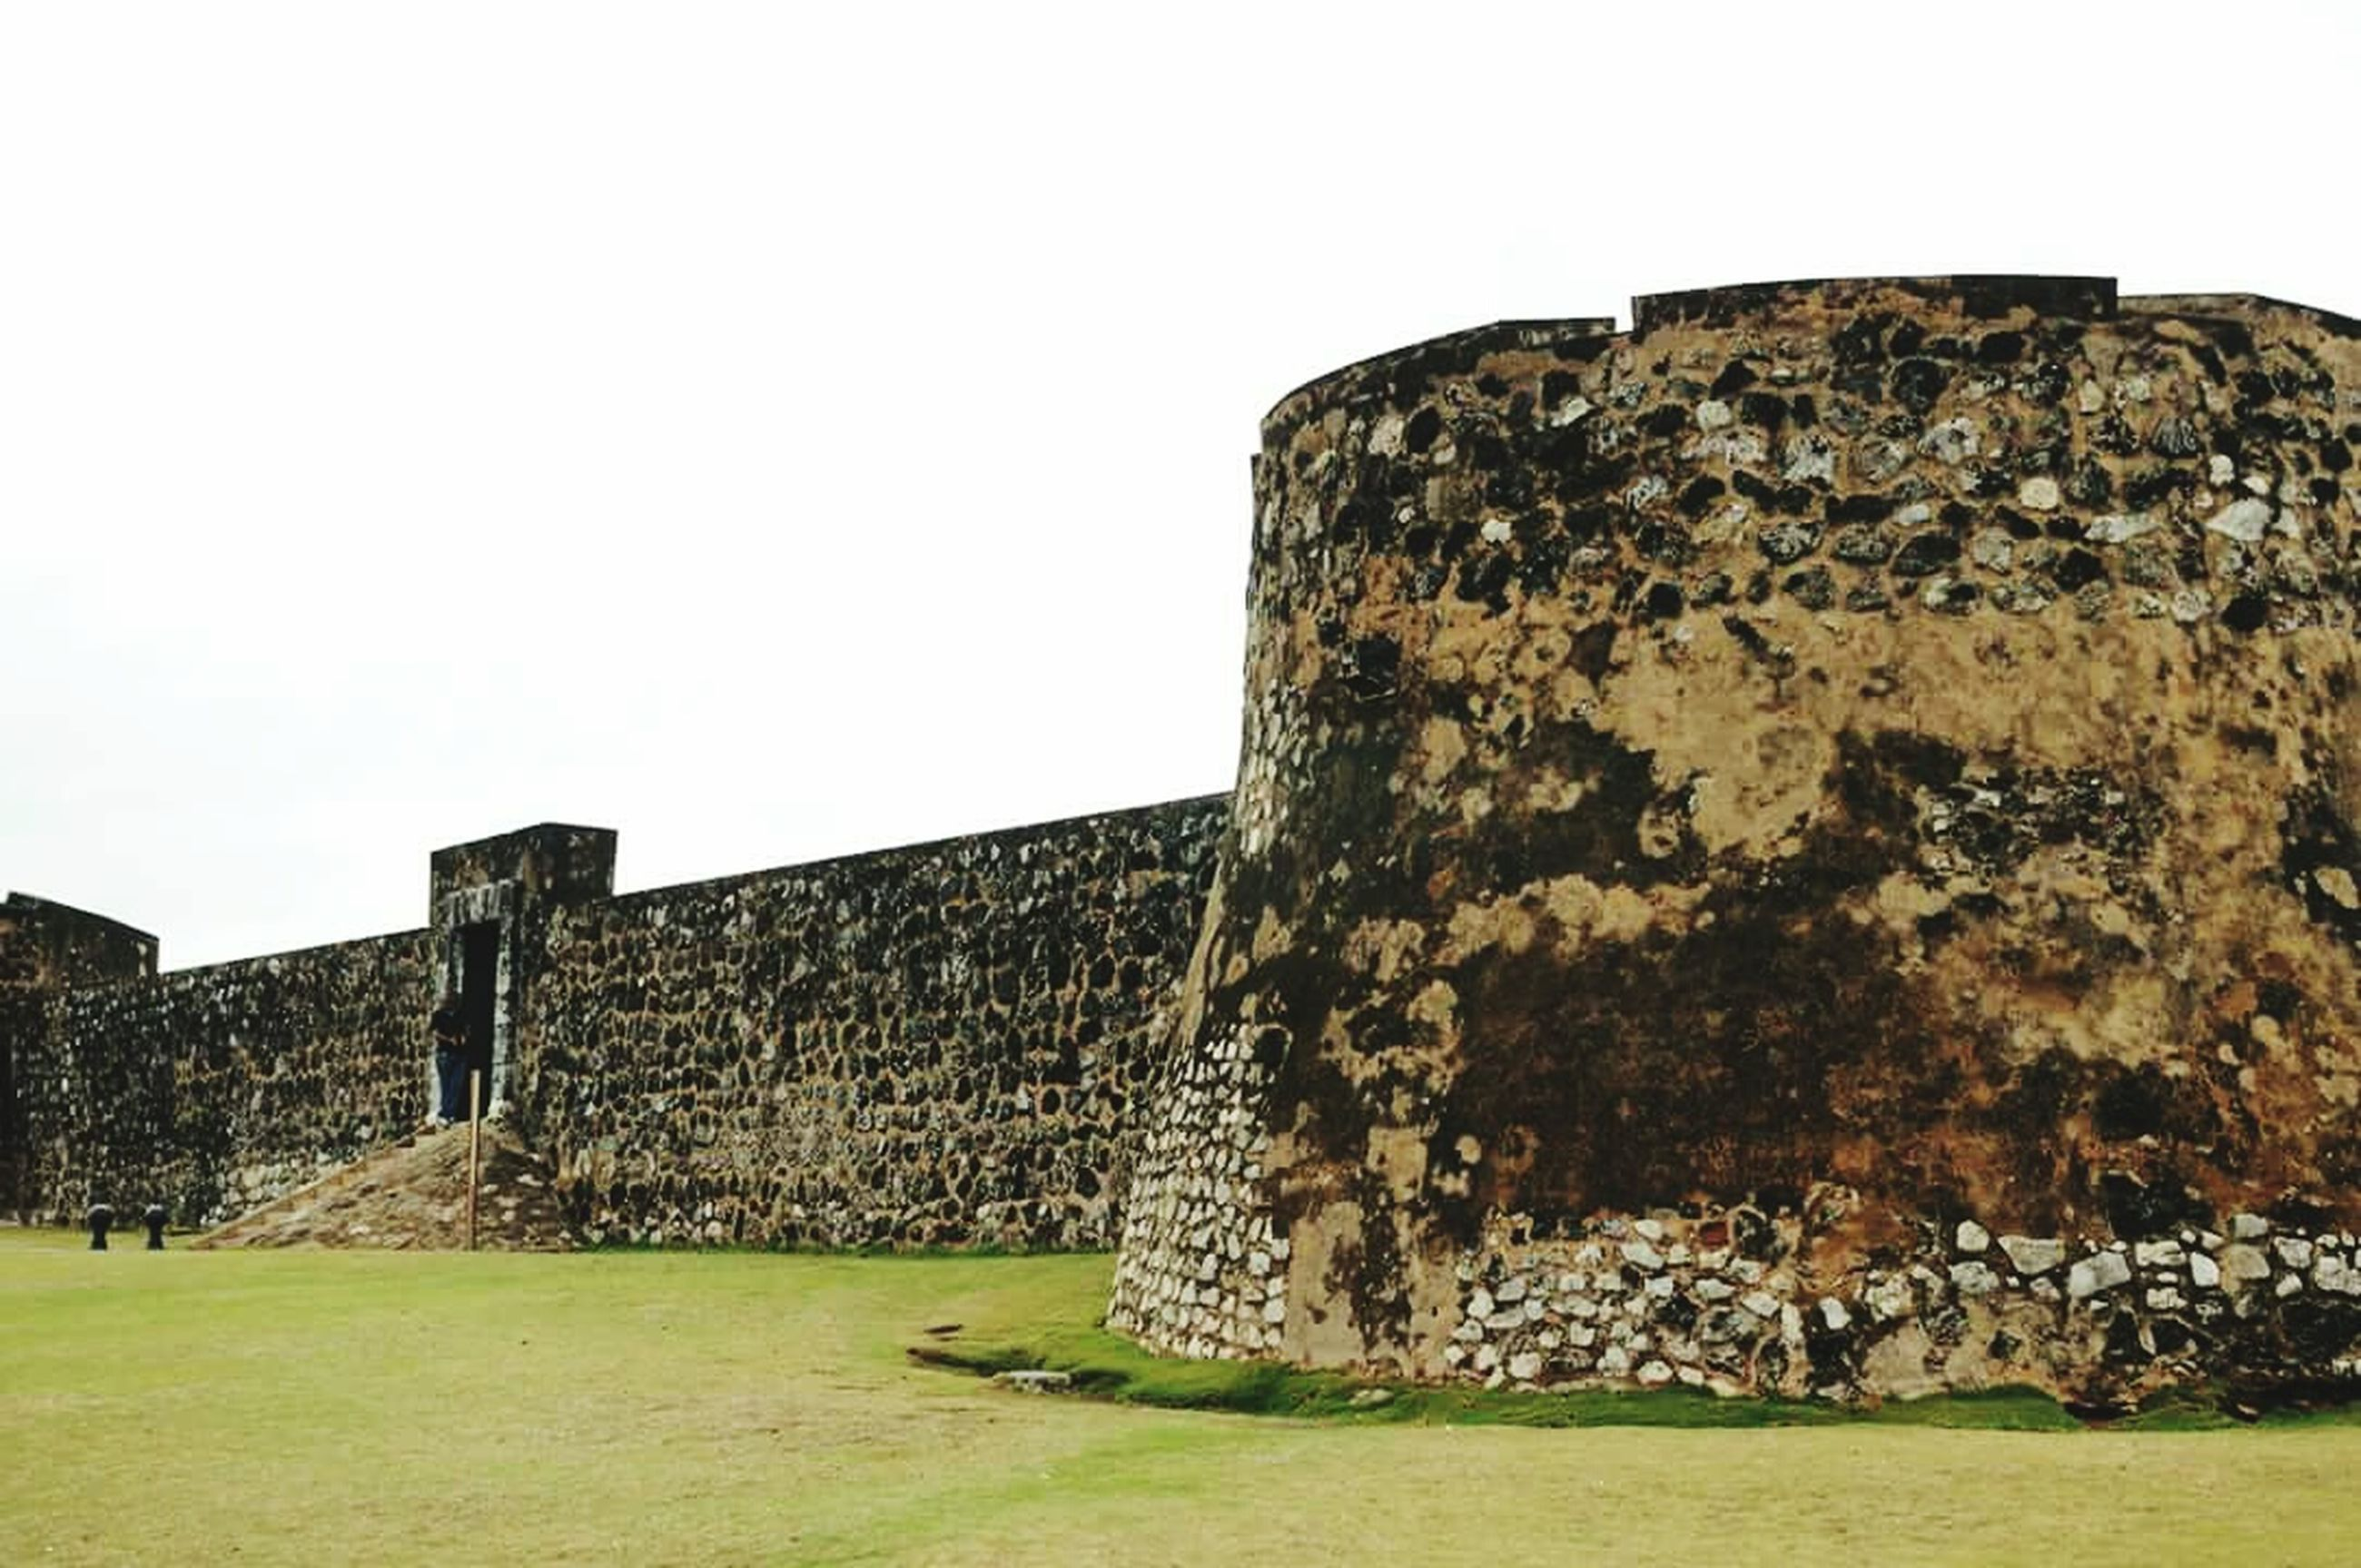 built structure, architecture, clear sky, history, grass, old ruin, building exterior, the past, stone wall, ancient, old, copy space, stone material, abandoned, damaged, sky, ancient civilization, ruined, low angle view, day